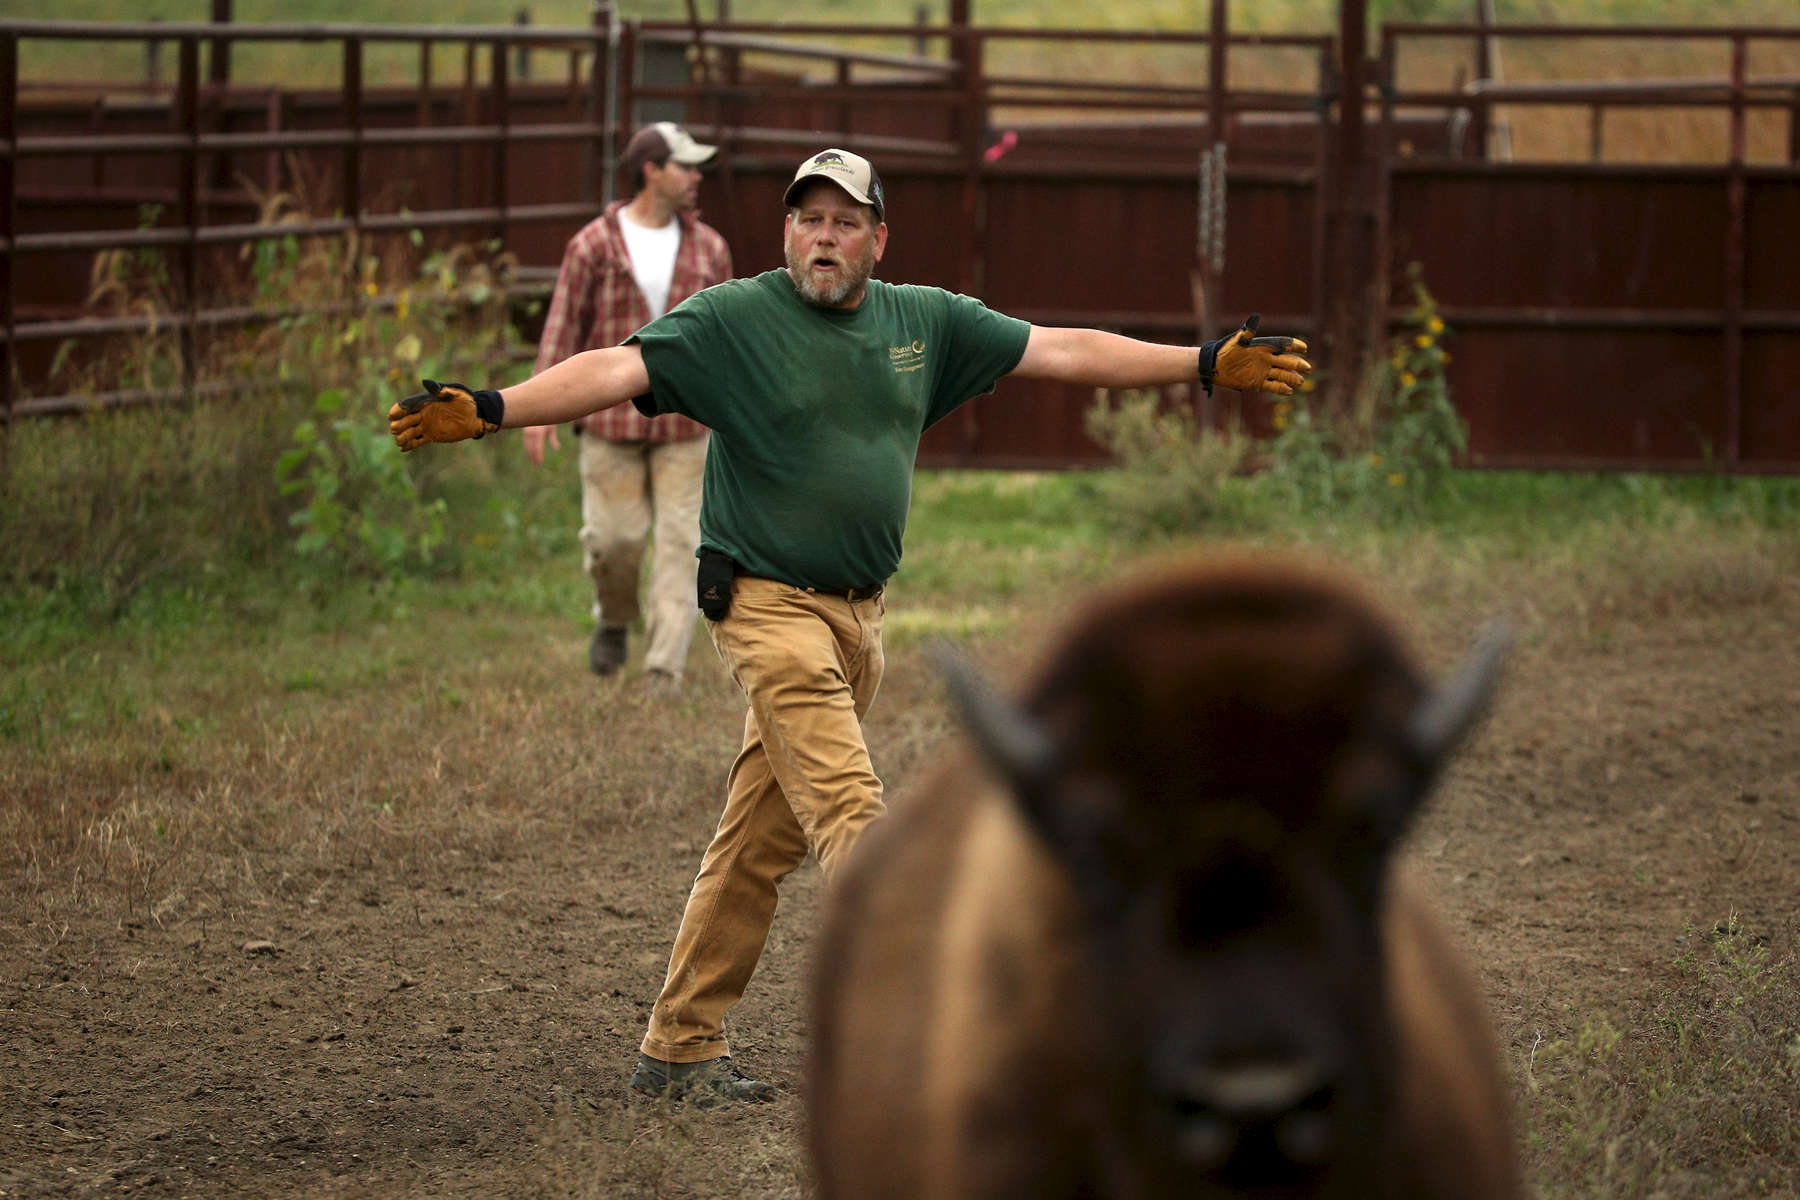 David Crites, a longtime volunteer at Nachusa Grasslands, pushes a group of bison into the corrals during the annual roundup in Iowa.